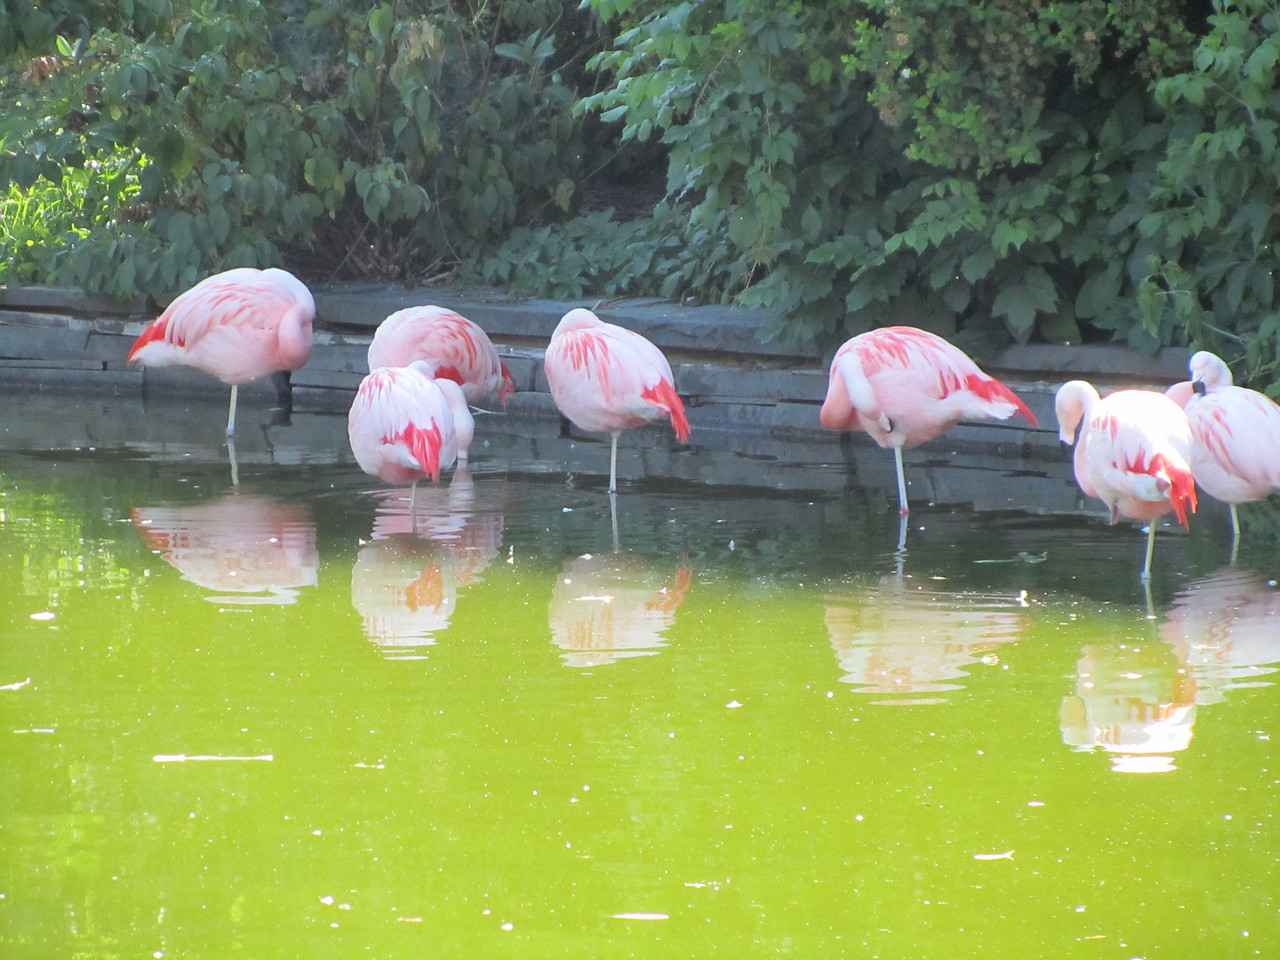 Flamingos wading in toxic waste.